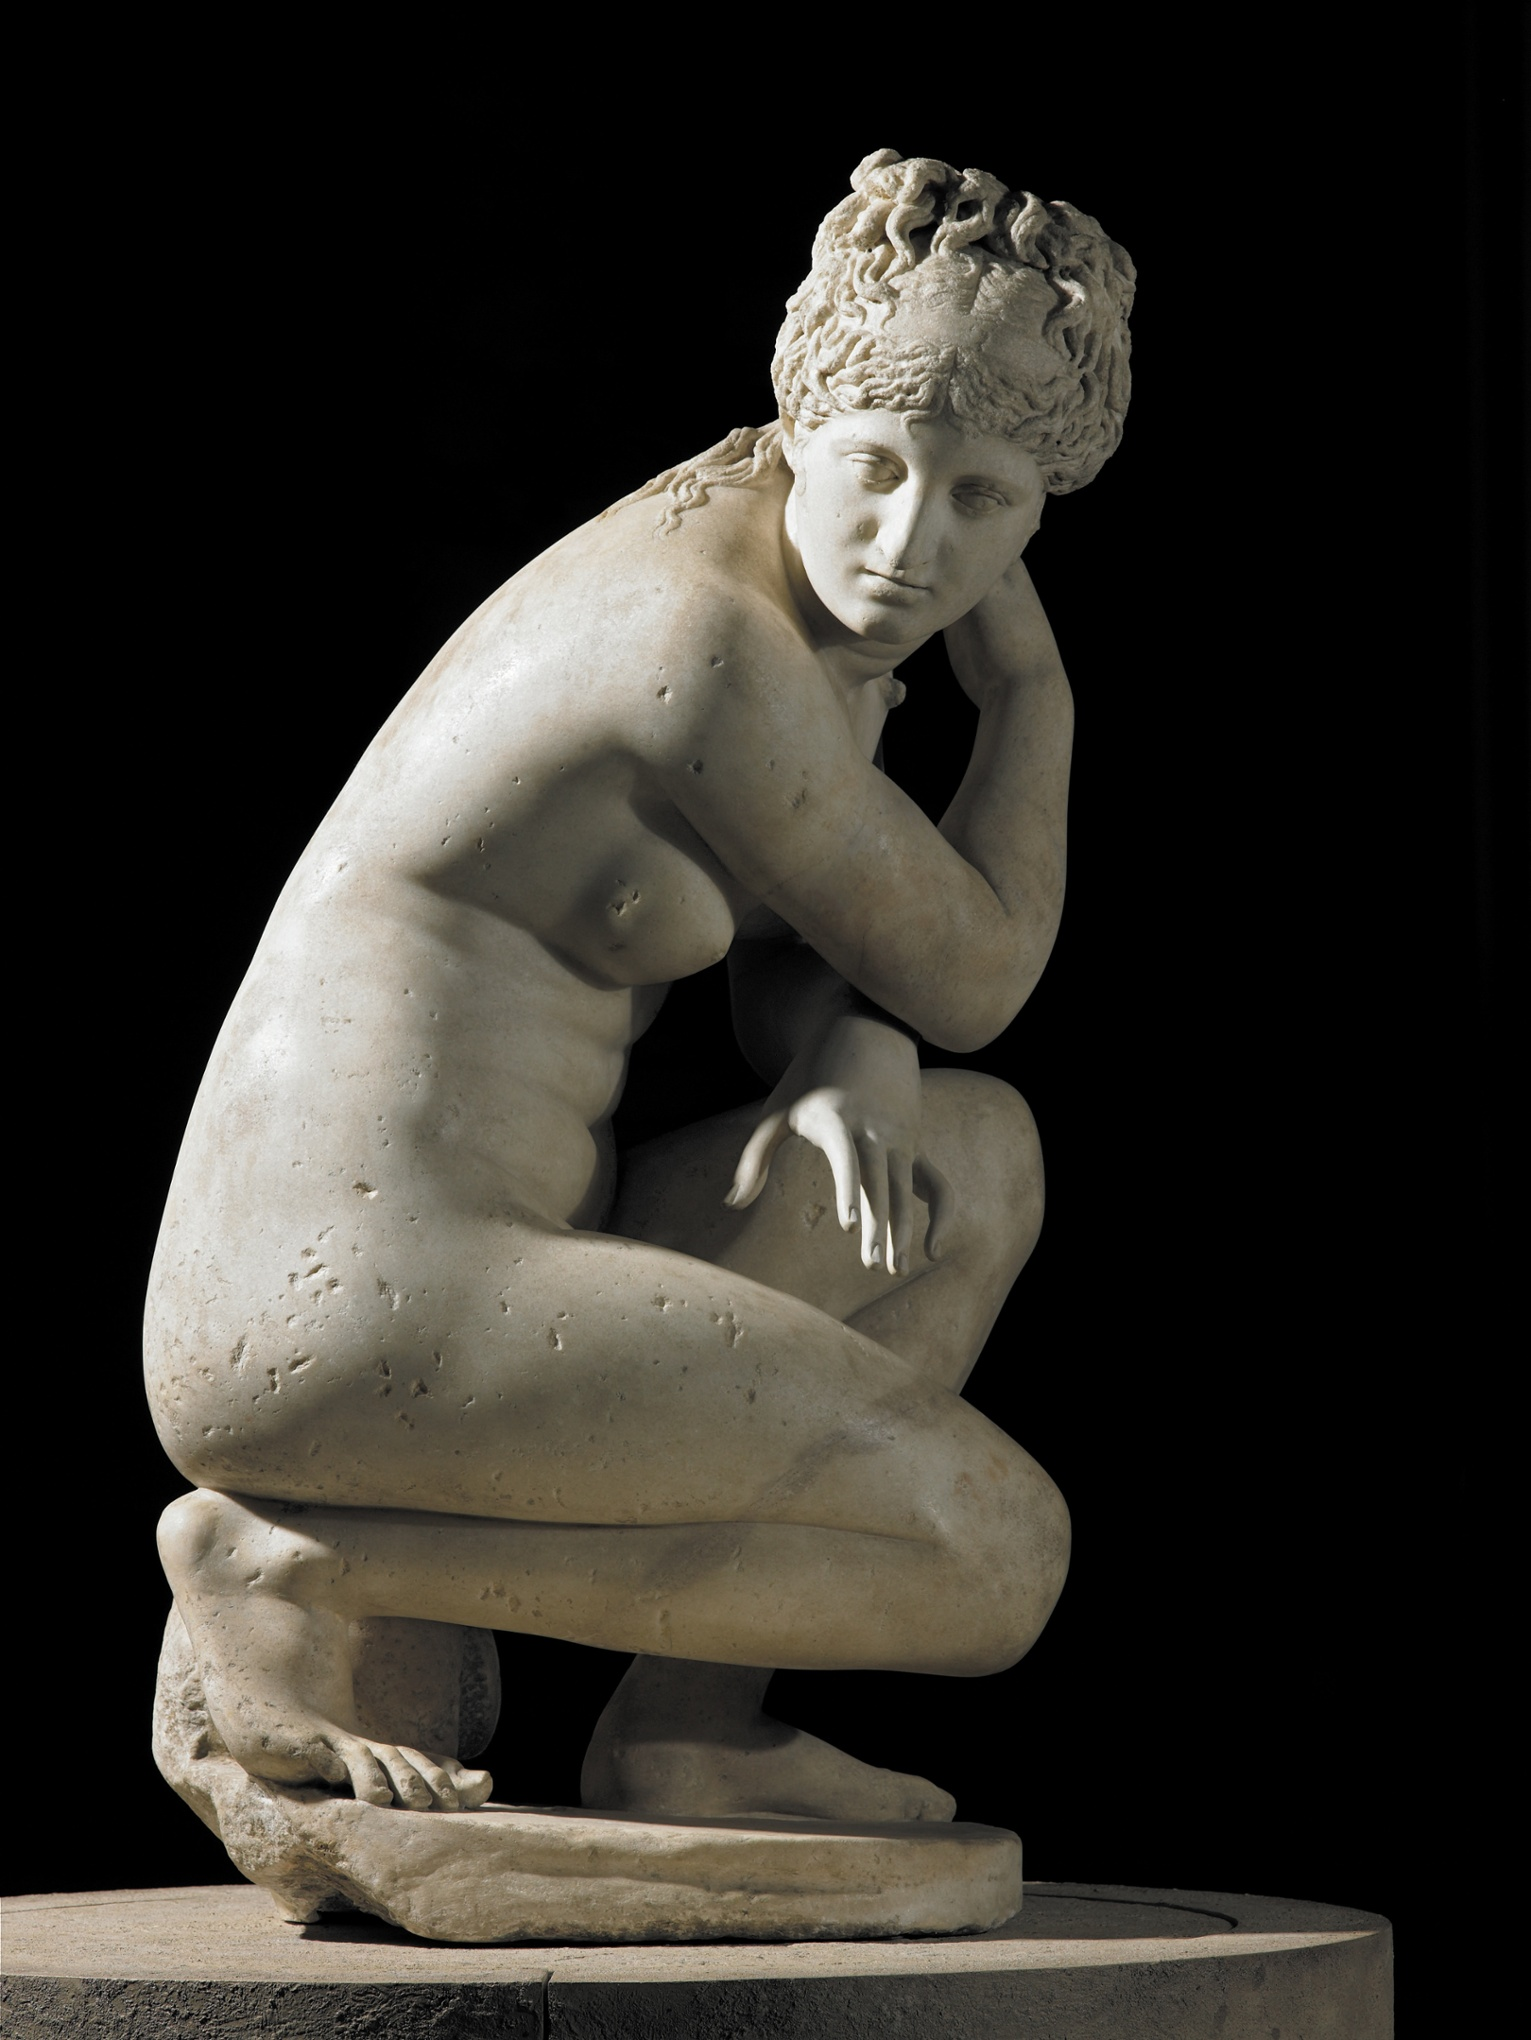 an analysis of the greek sculpture techniques and art Greek sculptures analysis essay writing service, custom greek sculptures analysis papers, term papers, free greek sculptures analysis samples, research papers, help.